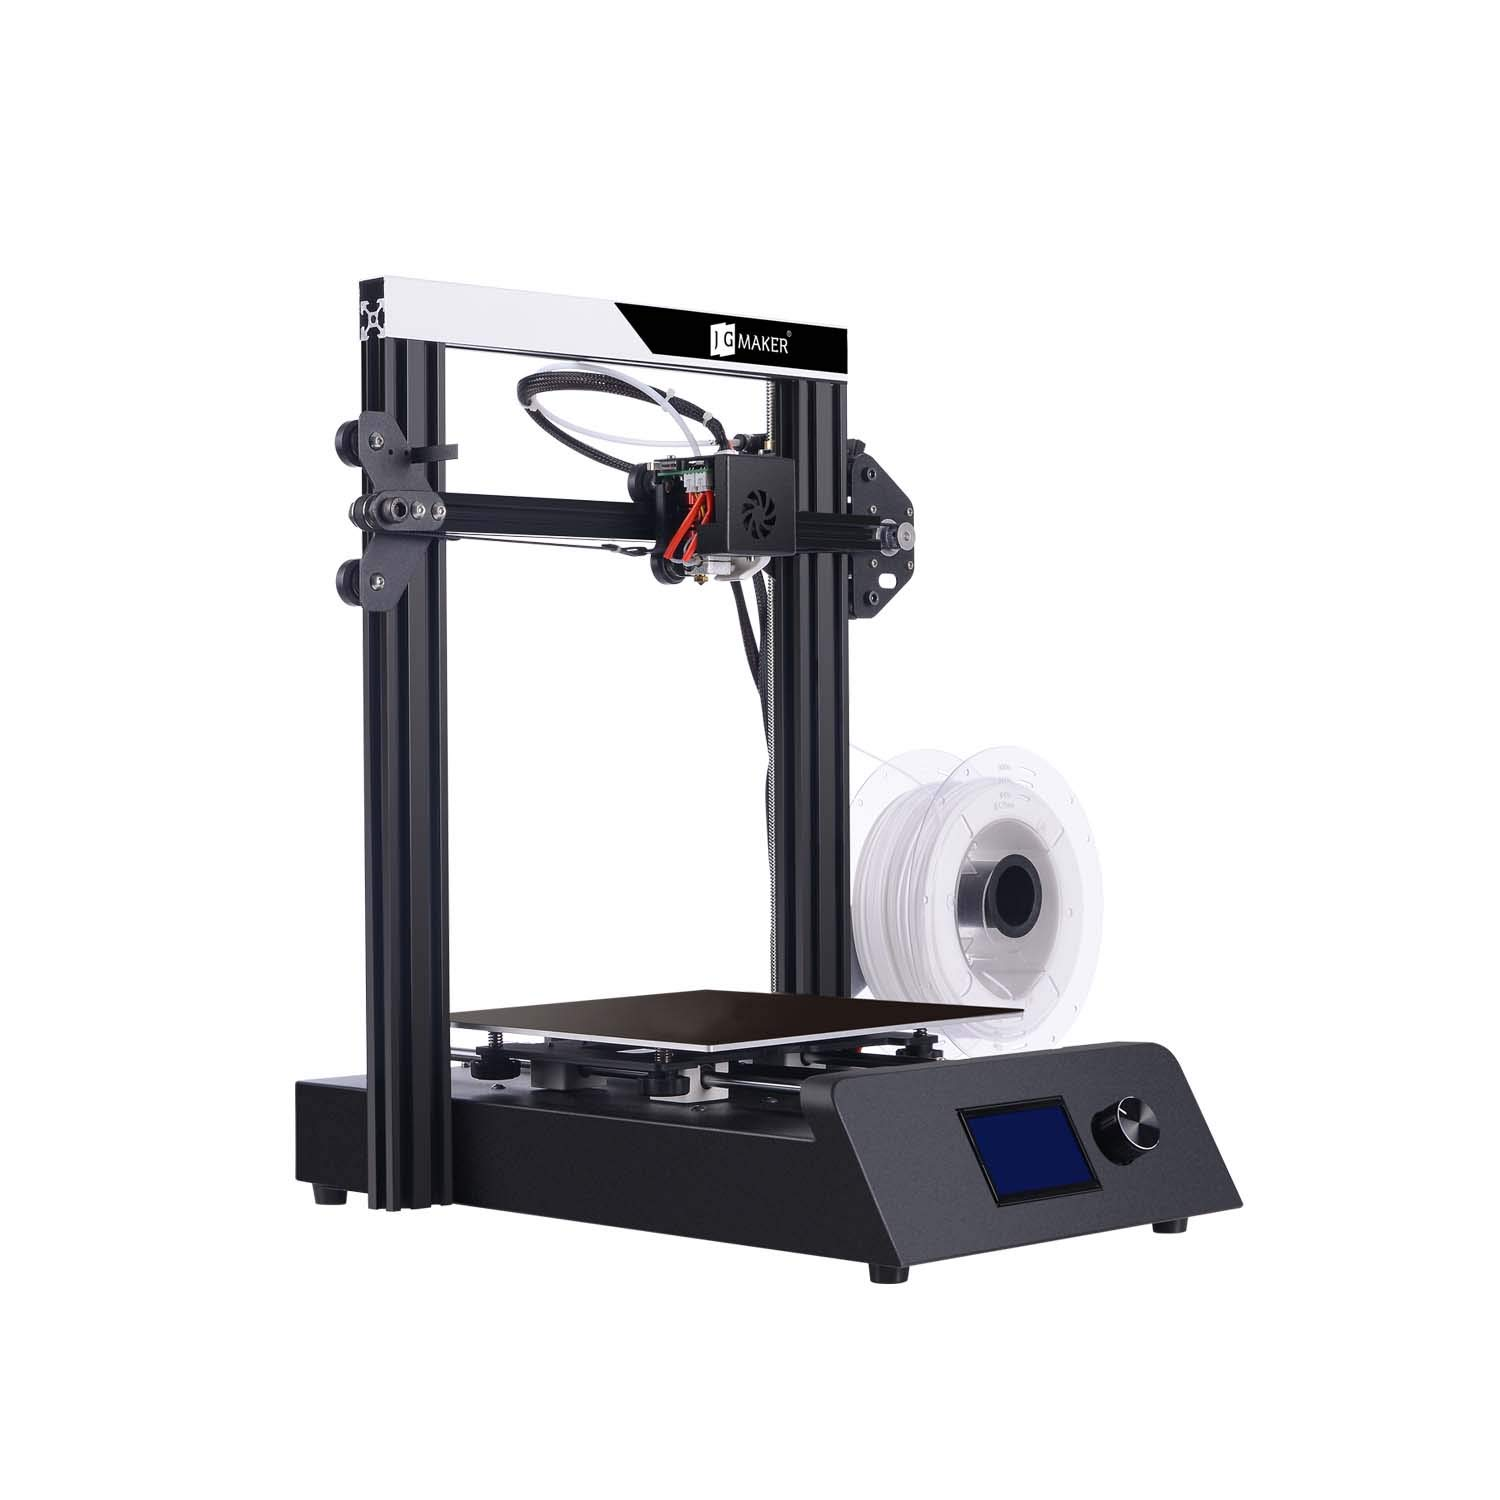 Great as a Starter 3D Printer